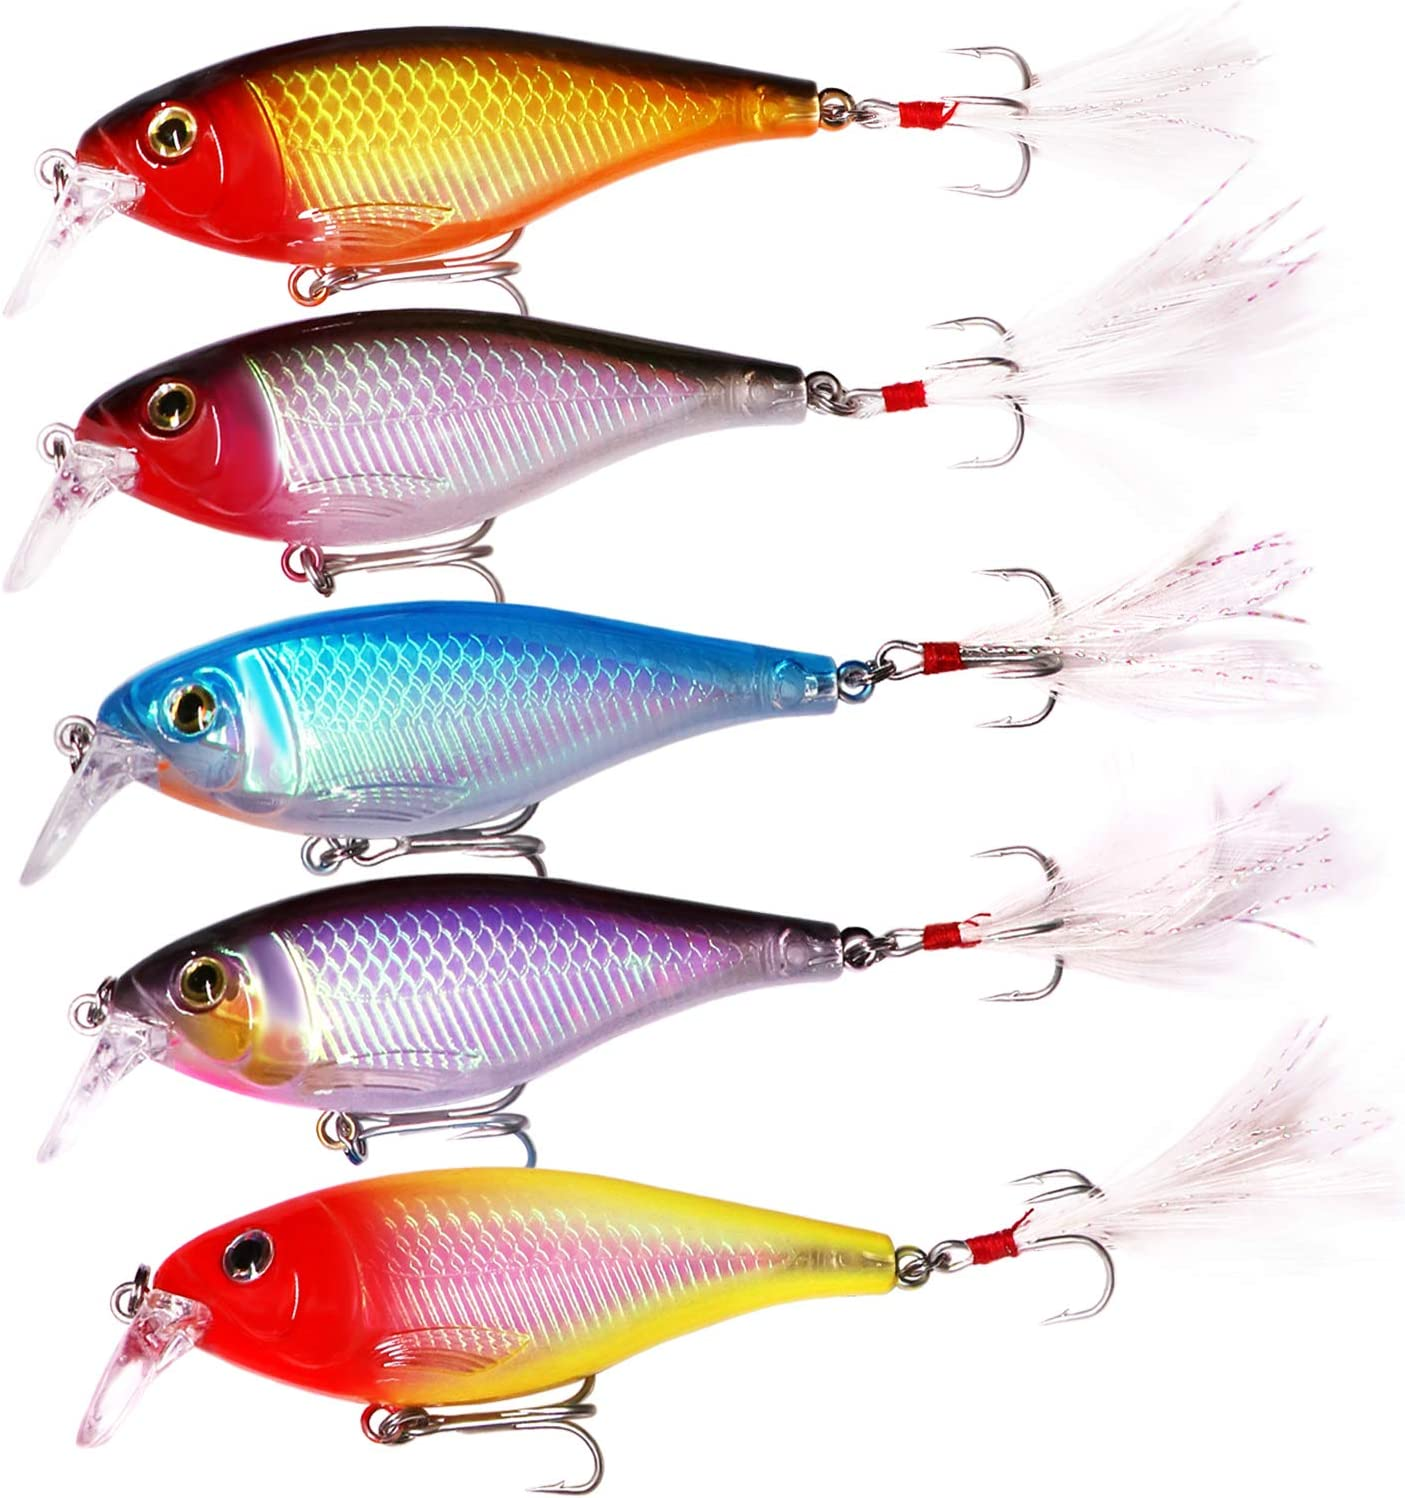 Details about  /Fishing Lure Bait Popper Gourd Shaped Crankbait Pencil Lure Ice Fishing Lure